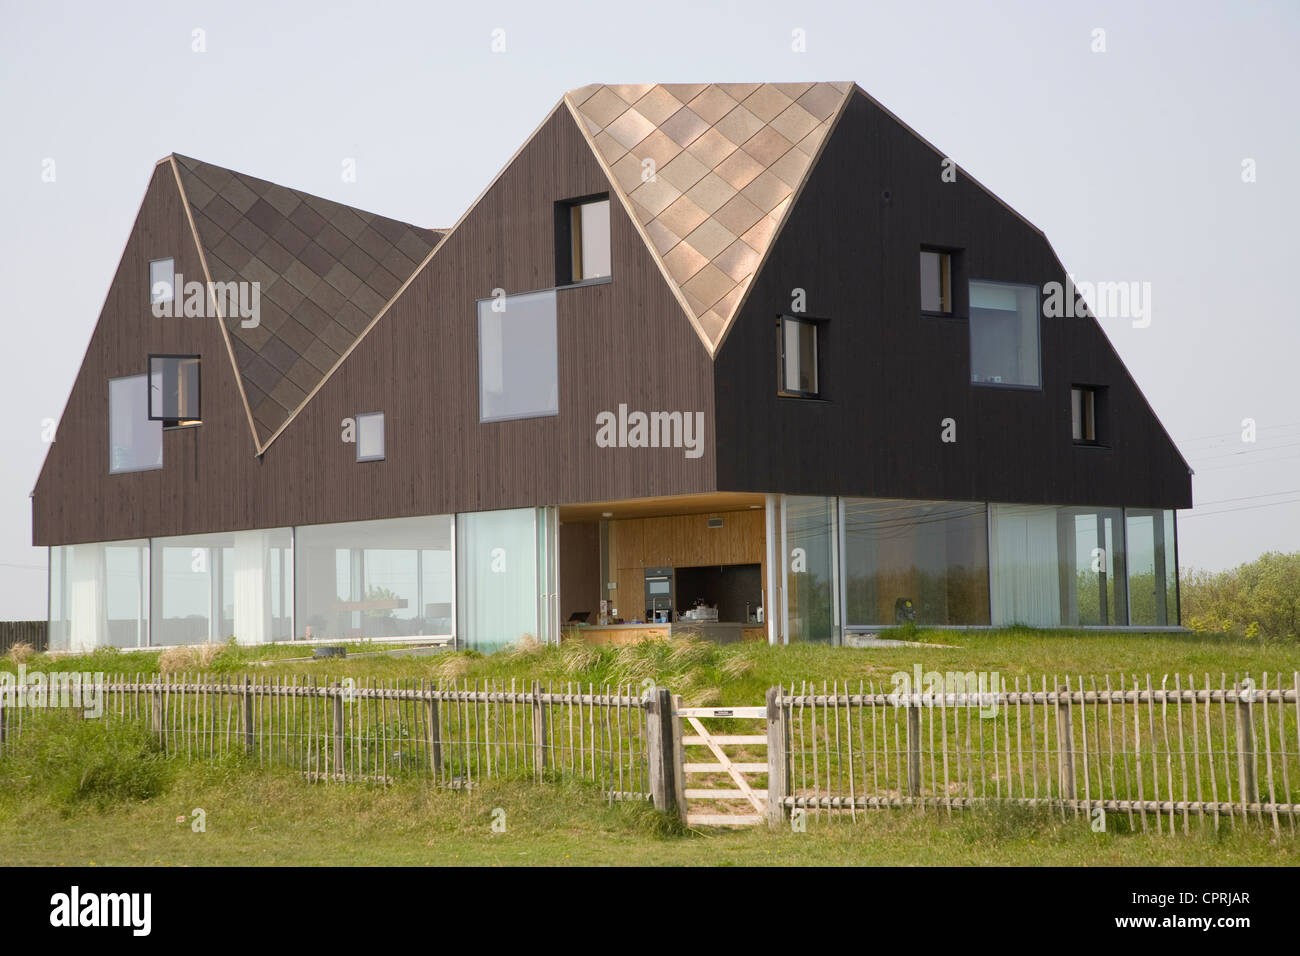 The Dune House, Thorpeness, Suffolk, England